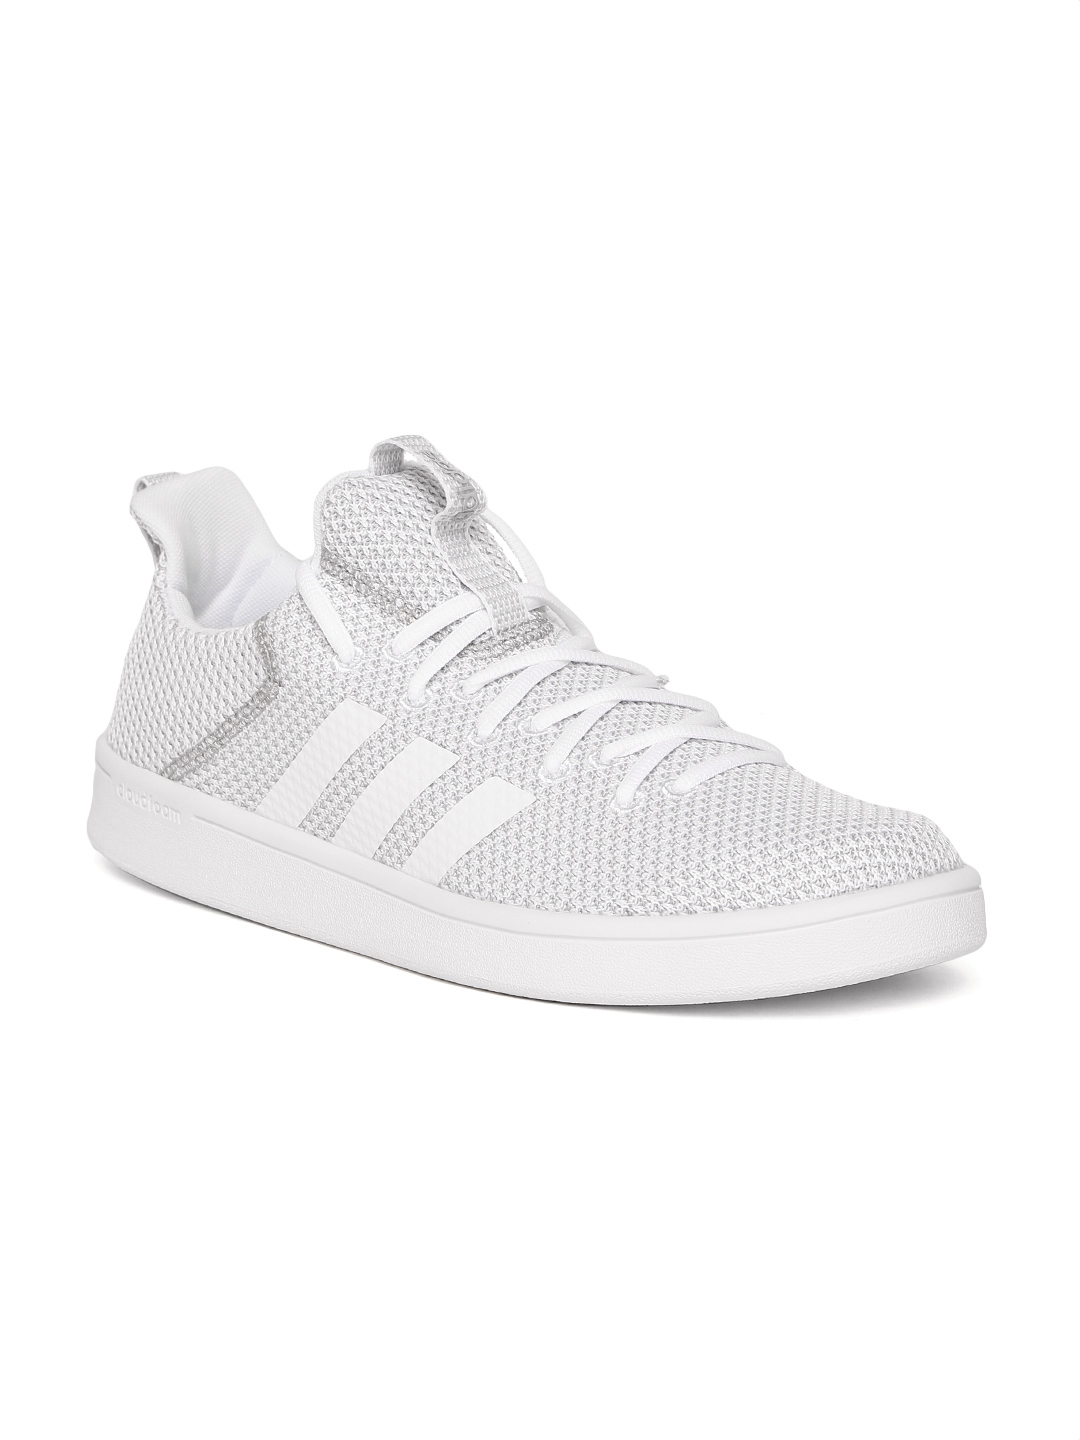 cddd23a8d6c Buy ADIDAS Men White CF ADV ADAPT Sneakers - Casual Shoes for Men ...